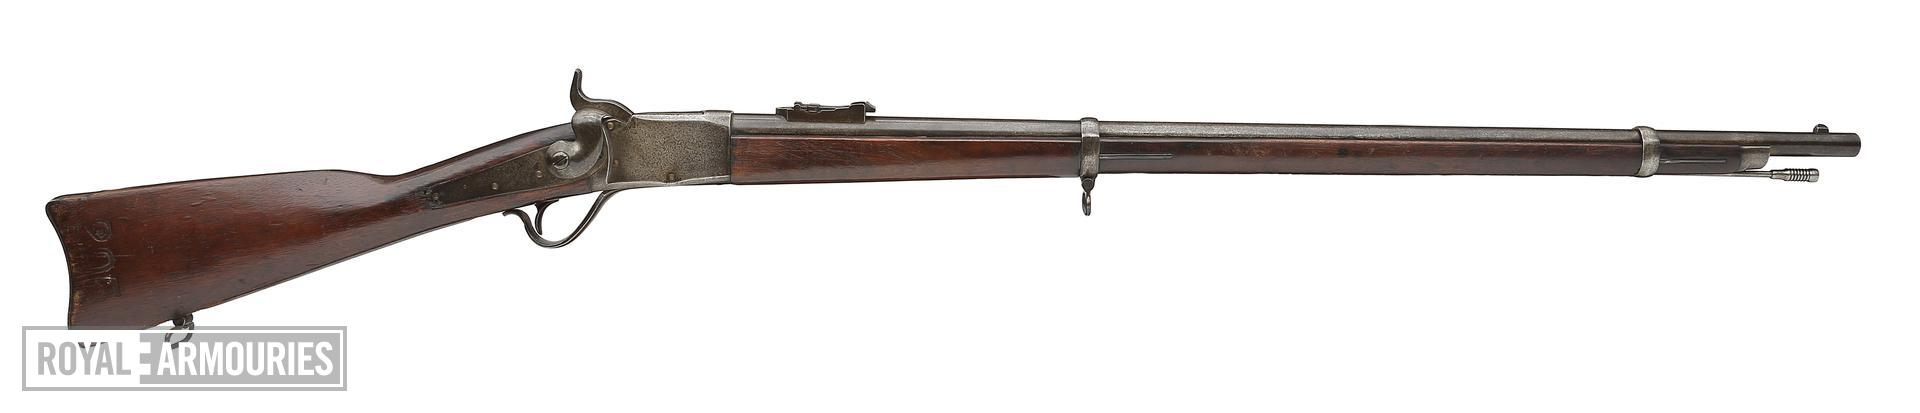 Centrefire breech-loading rifle - Peabody